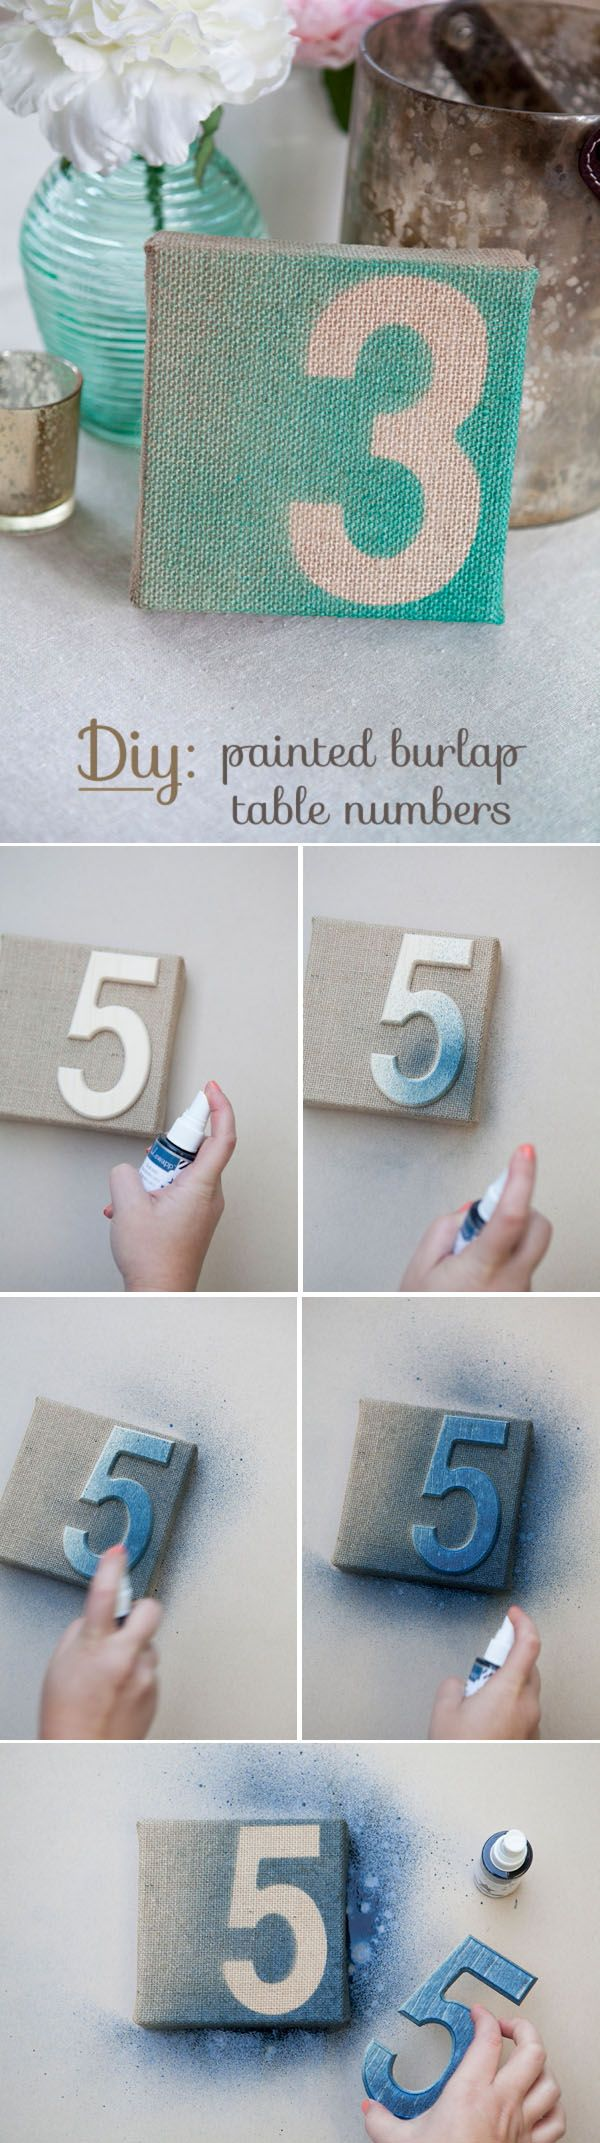 677 best diy weddings great ideas on a low budget images on top 10 diy wedding table number ideas with tutorials junglespirit Gallery